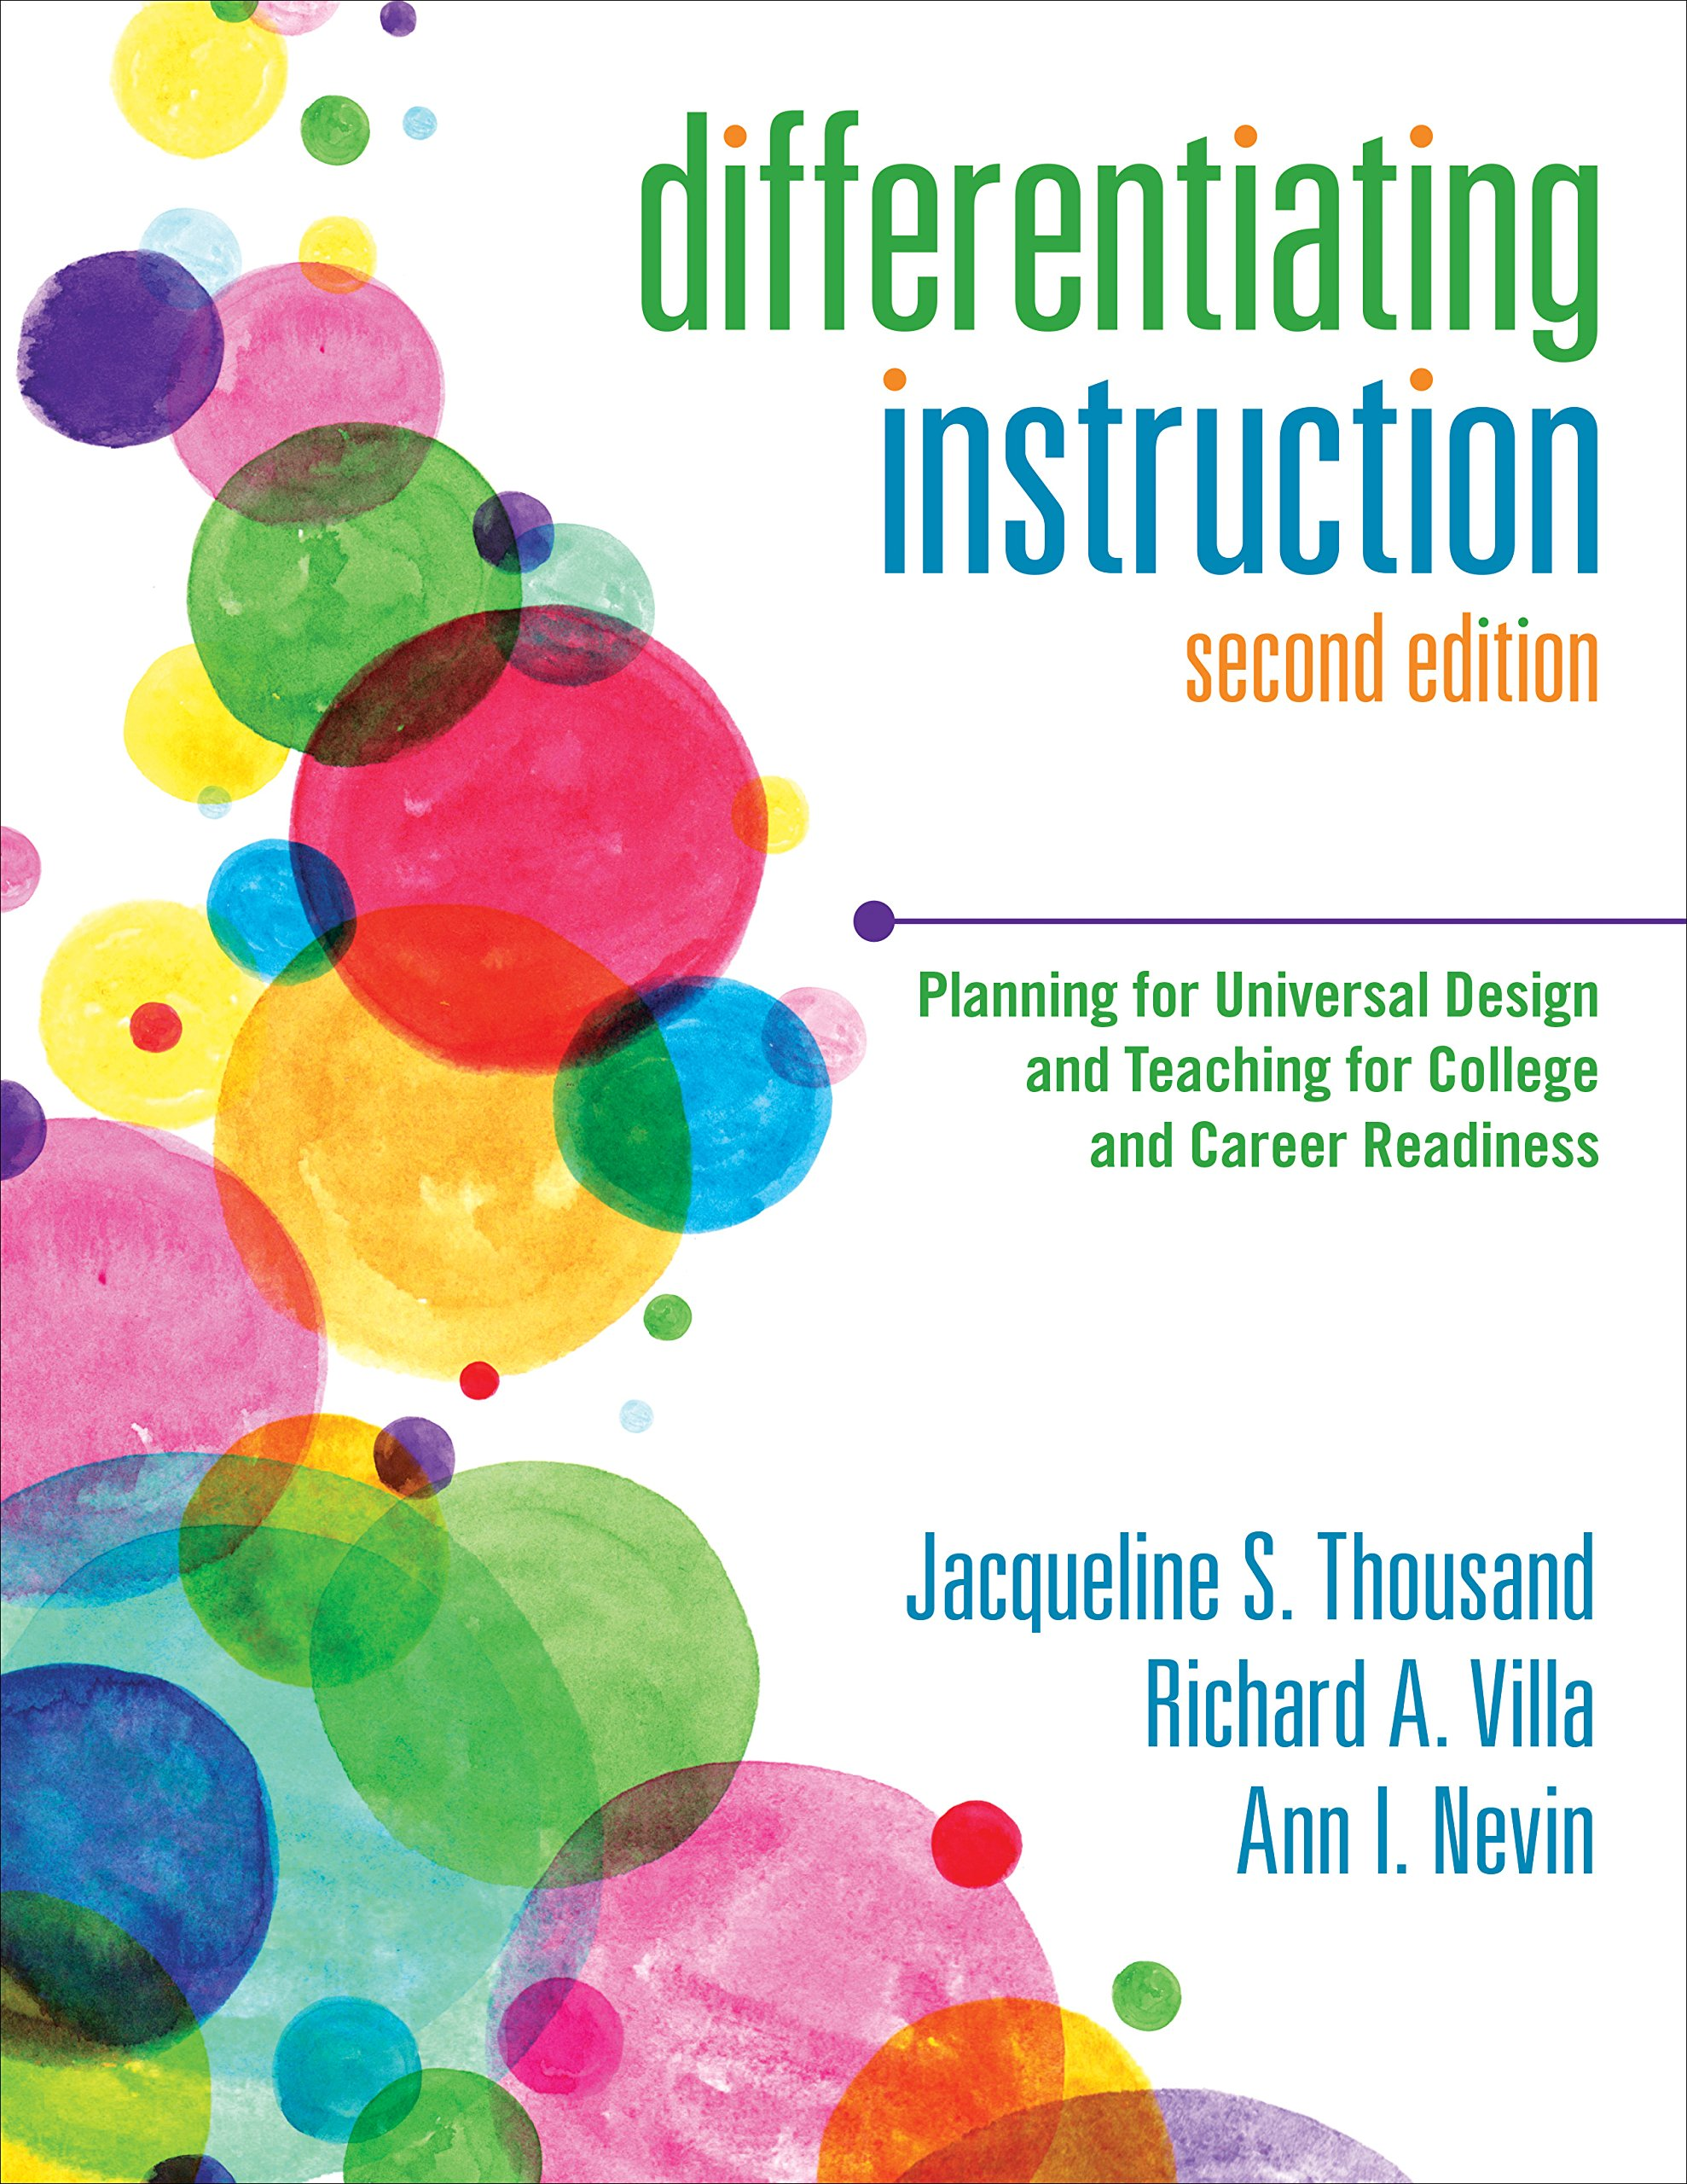 Amazon Com Differentiating Instruction Planning For Universal Design And Teaching For College And Career Readiness Ebook Thousand Jacqueline S Villa Richard A Nevin Ann I Kindle Store